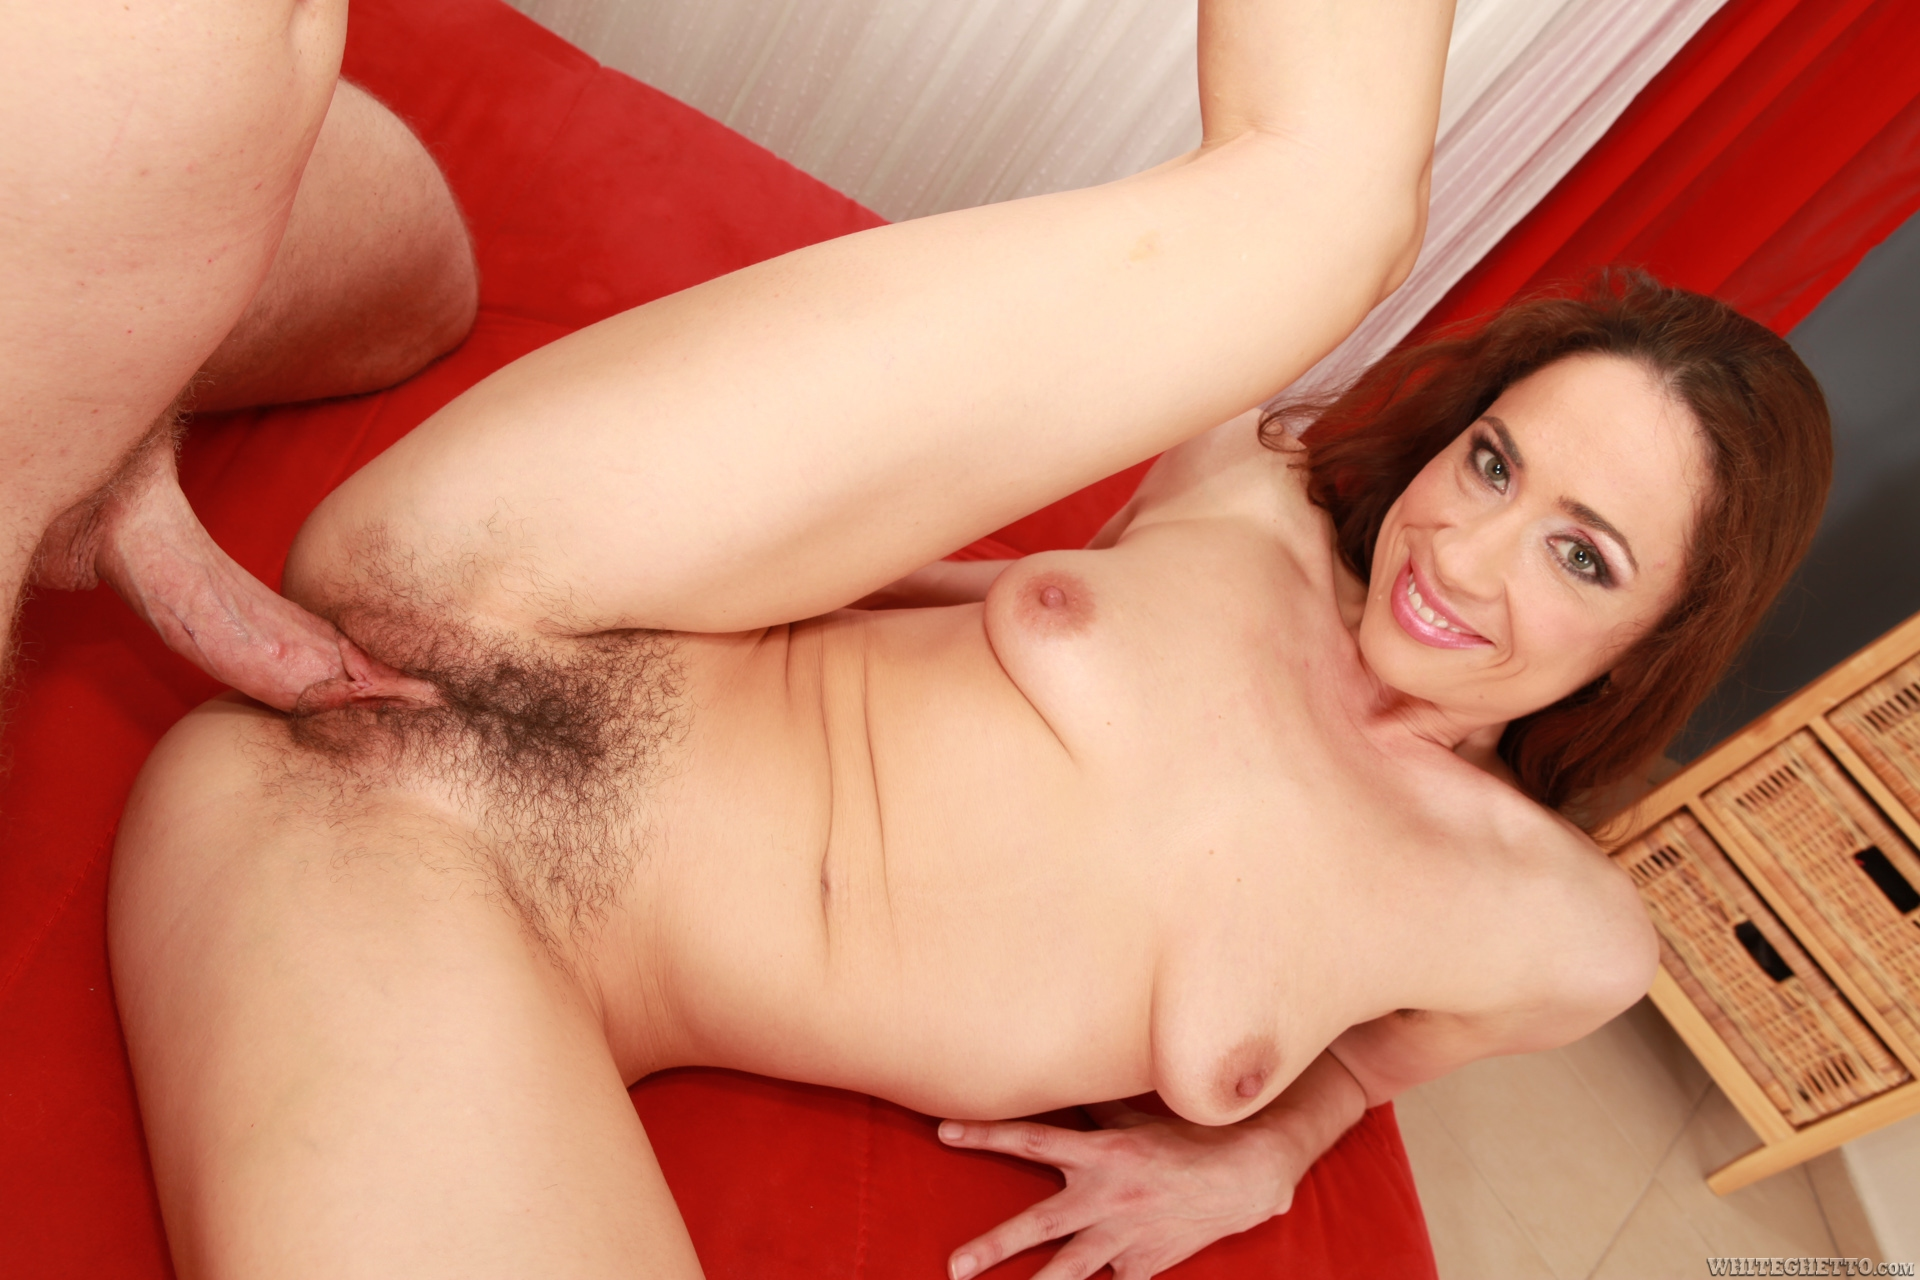 touching kimmy granger rides bambinos huge cock drilling her think, that